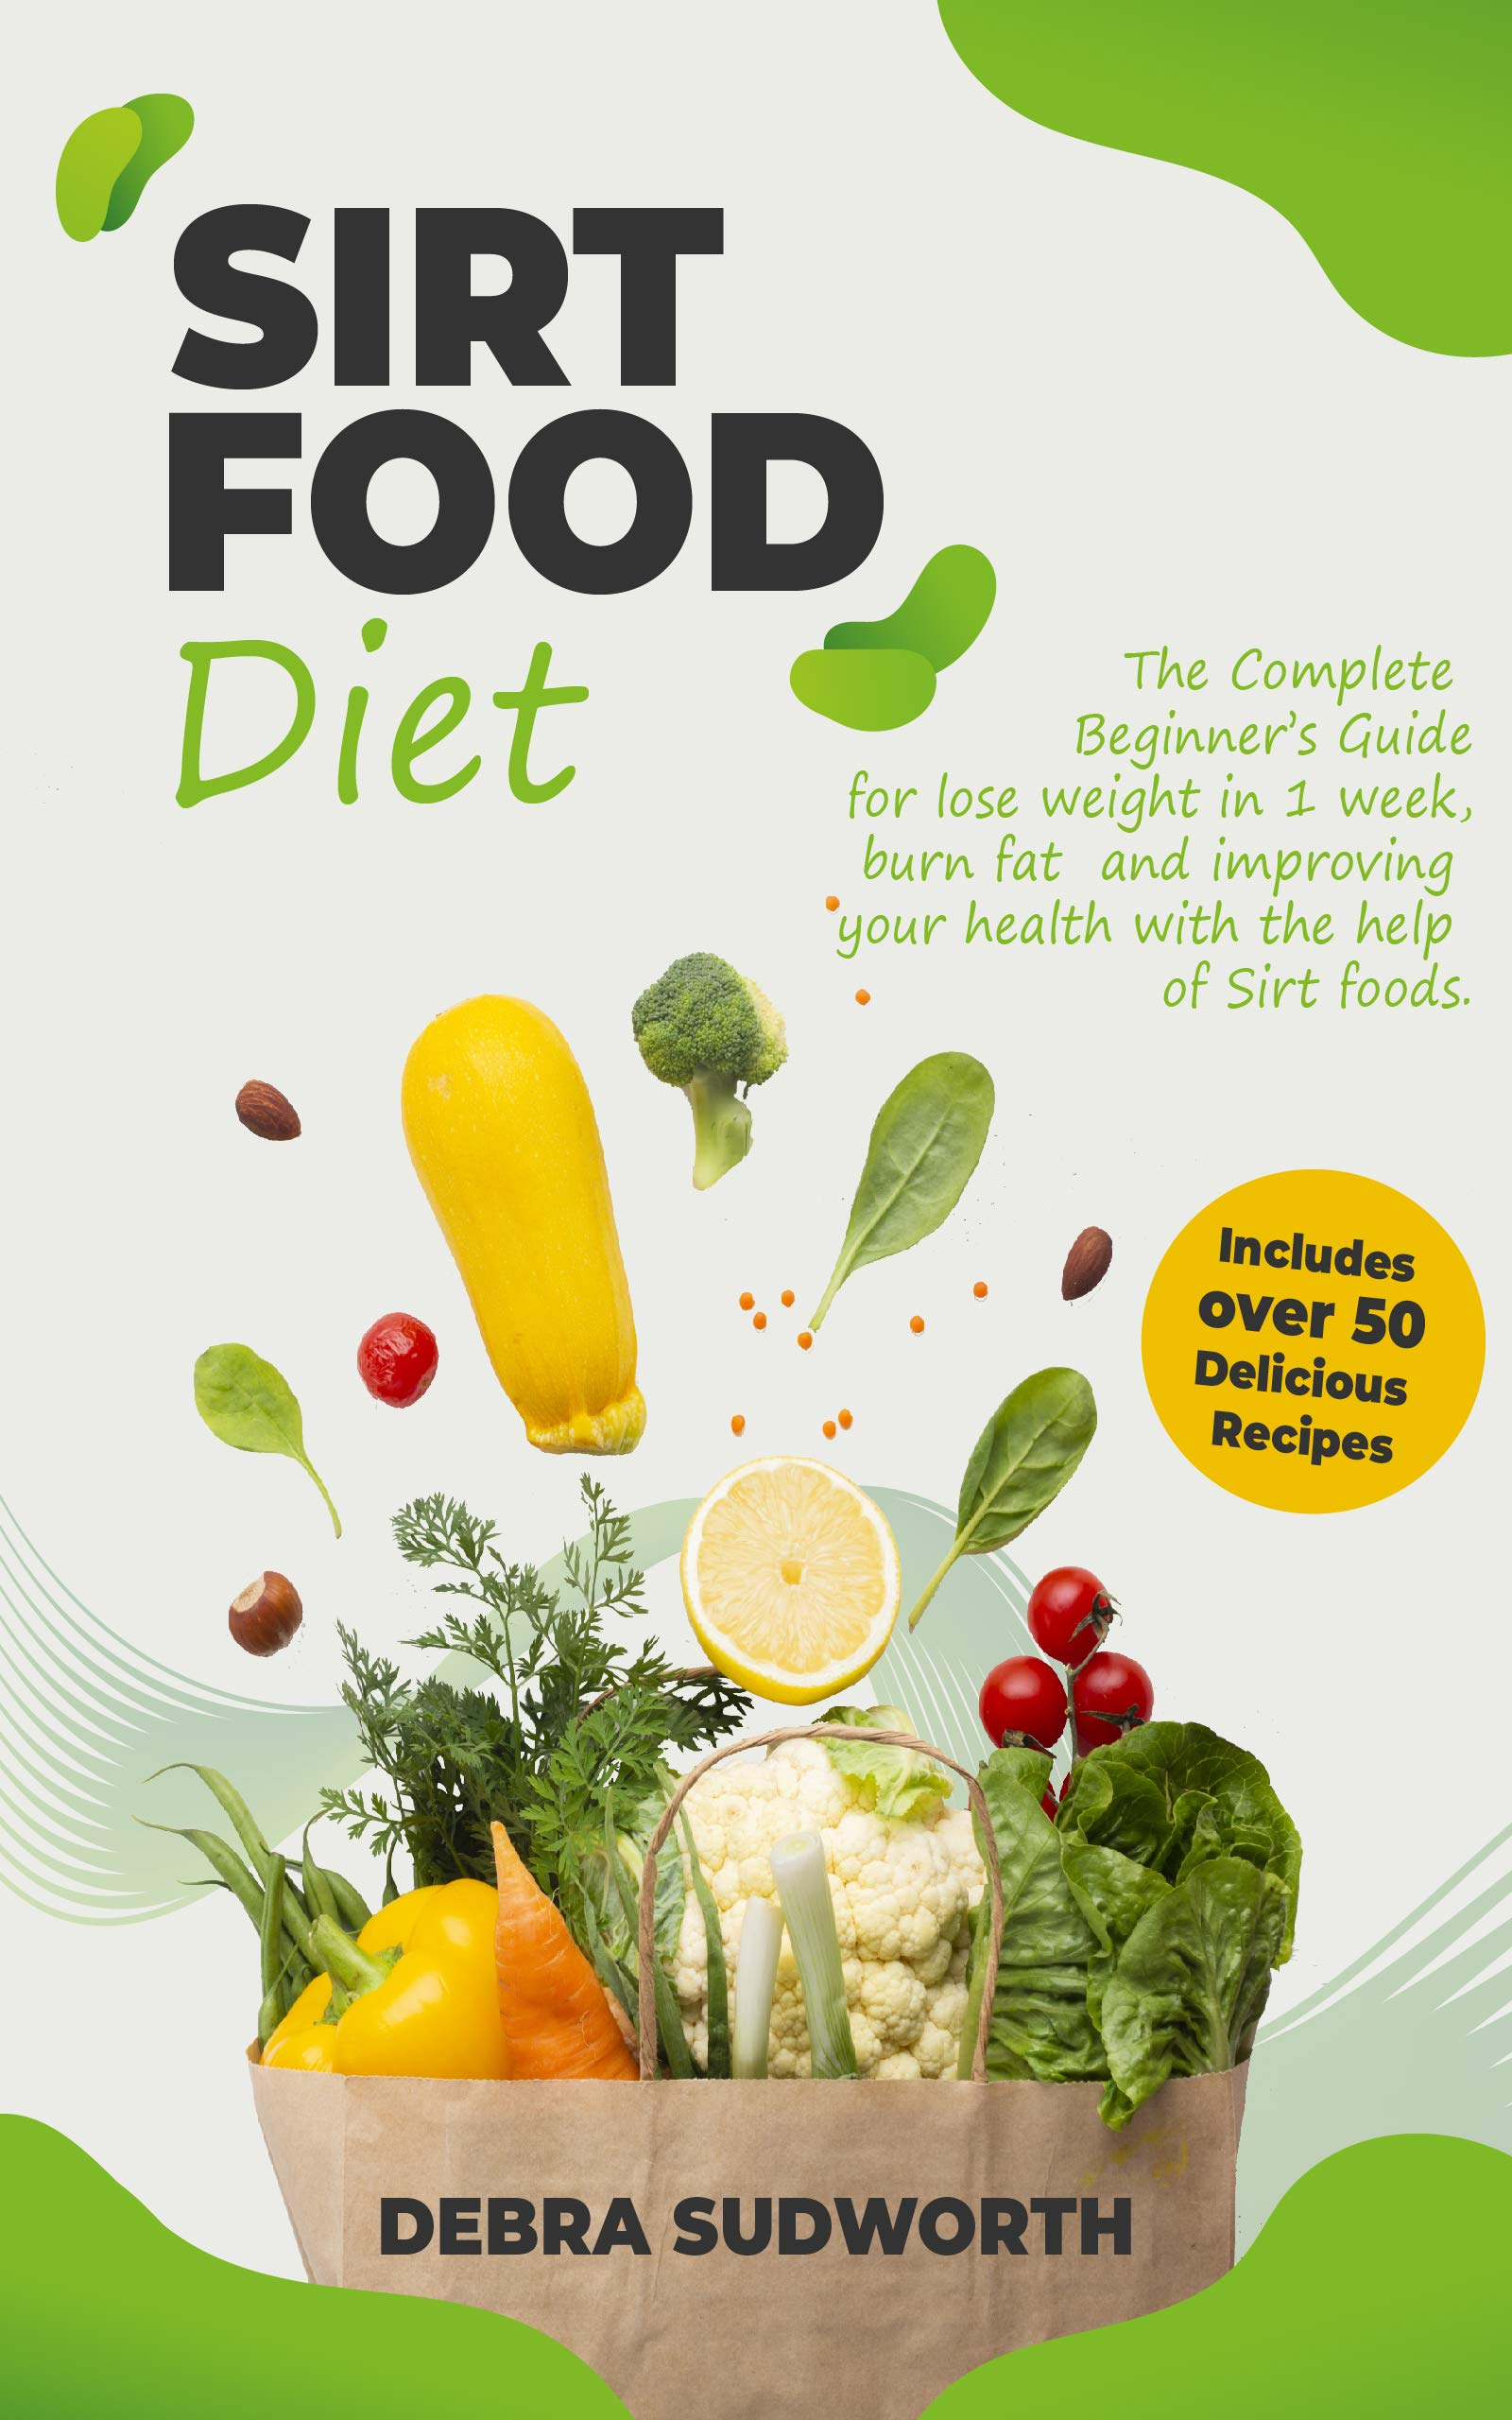 Download Book Sirtfood Diet The Complete Beginner S Guide For Lose Weight In 1 Week Burn Fat And Improving Your Health With The Help Of Sirt Foods Includes Over 50 Easy Delicious Recipes